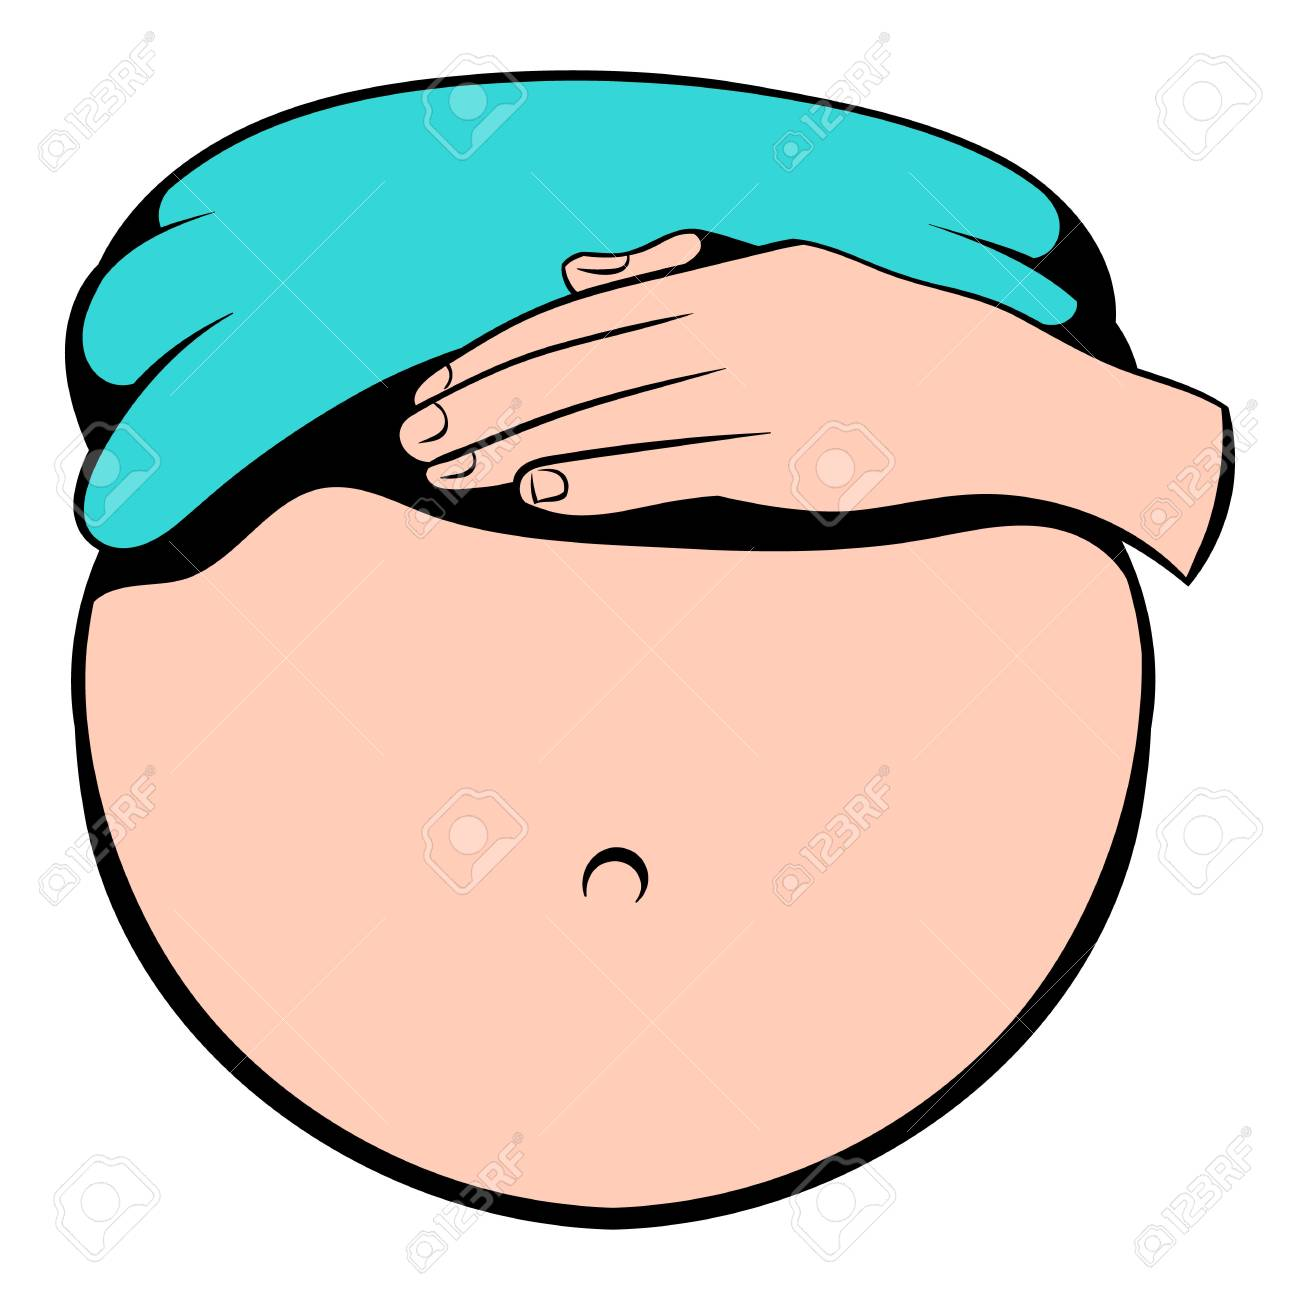 Belly of pregnant women icon, icon cartoon » Clipart Station.